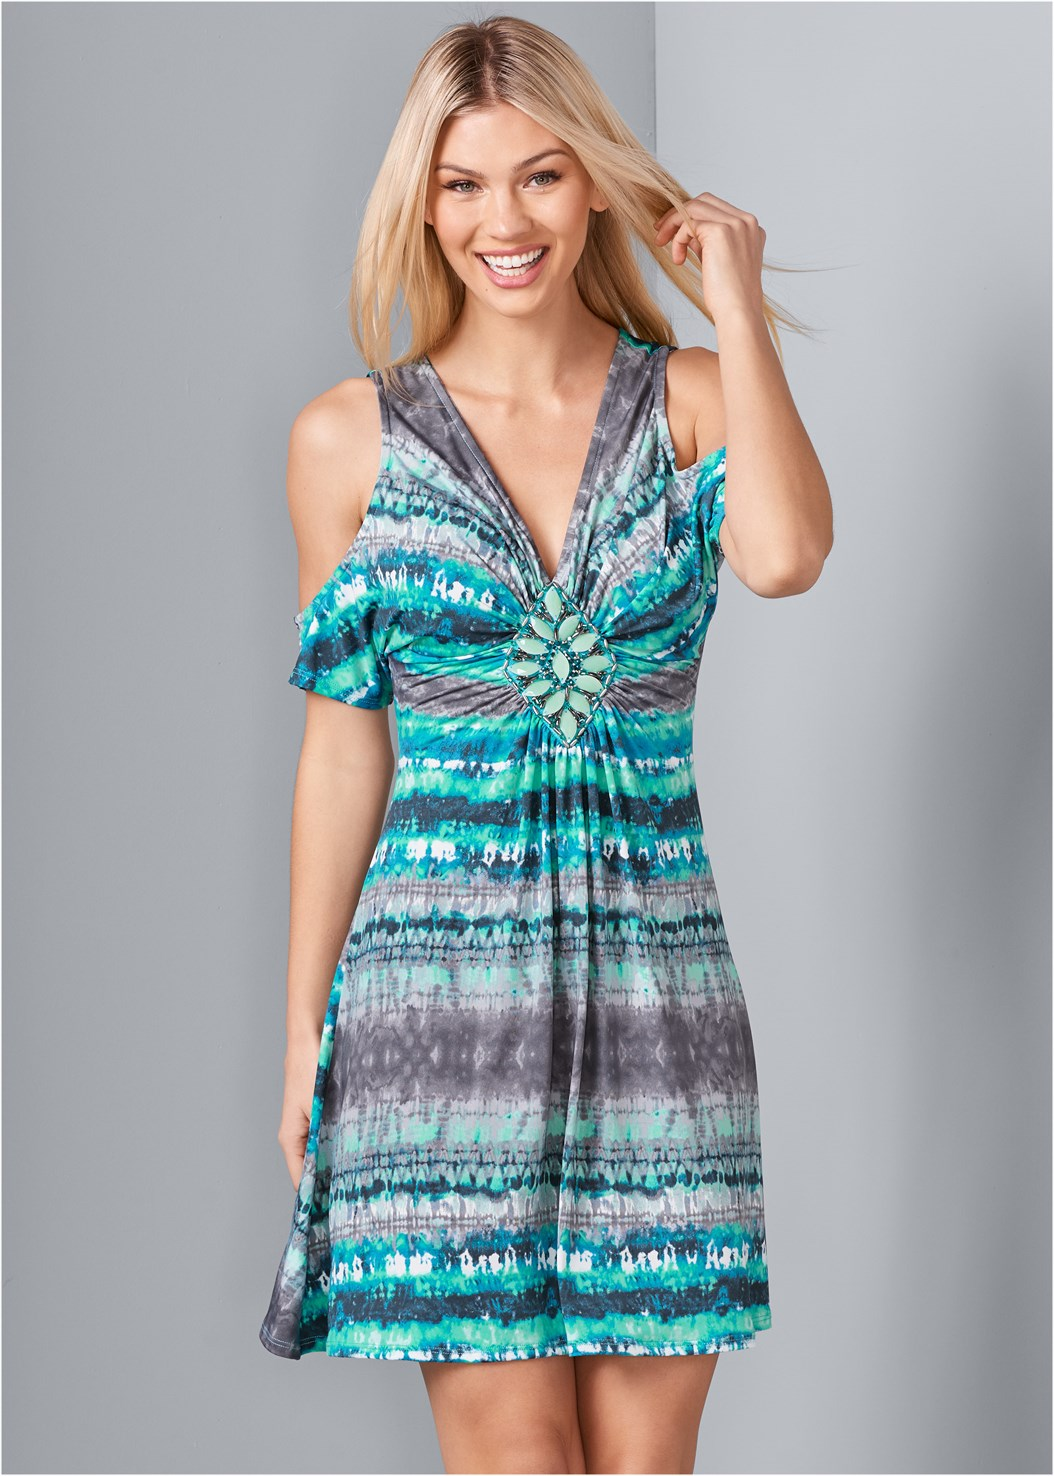 Embellished Tie Dye Dress,Lucite Detail Heels